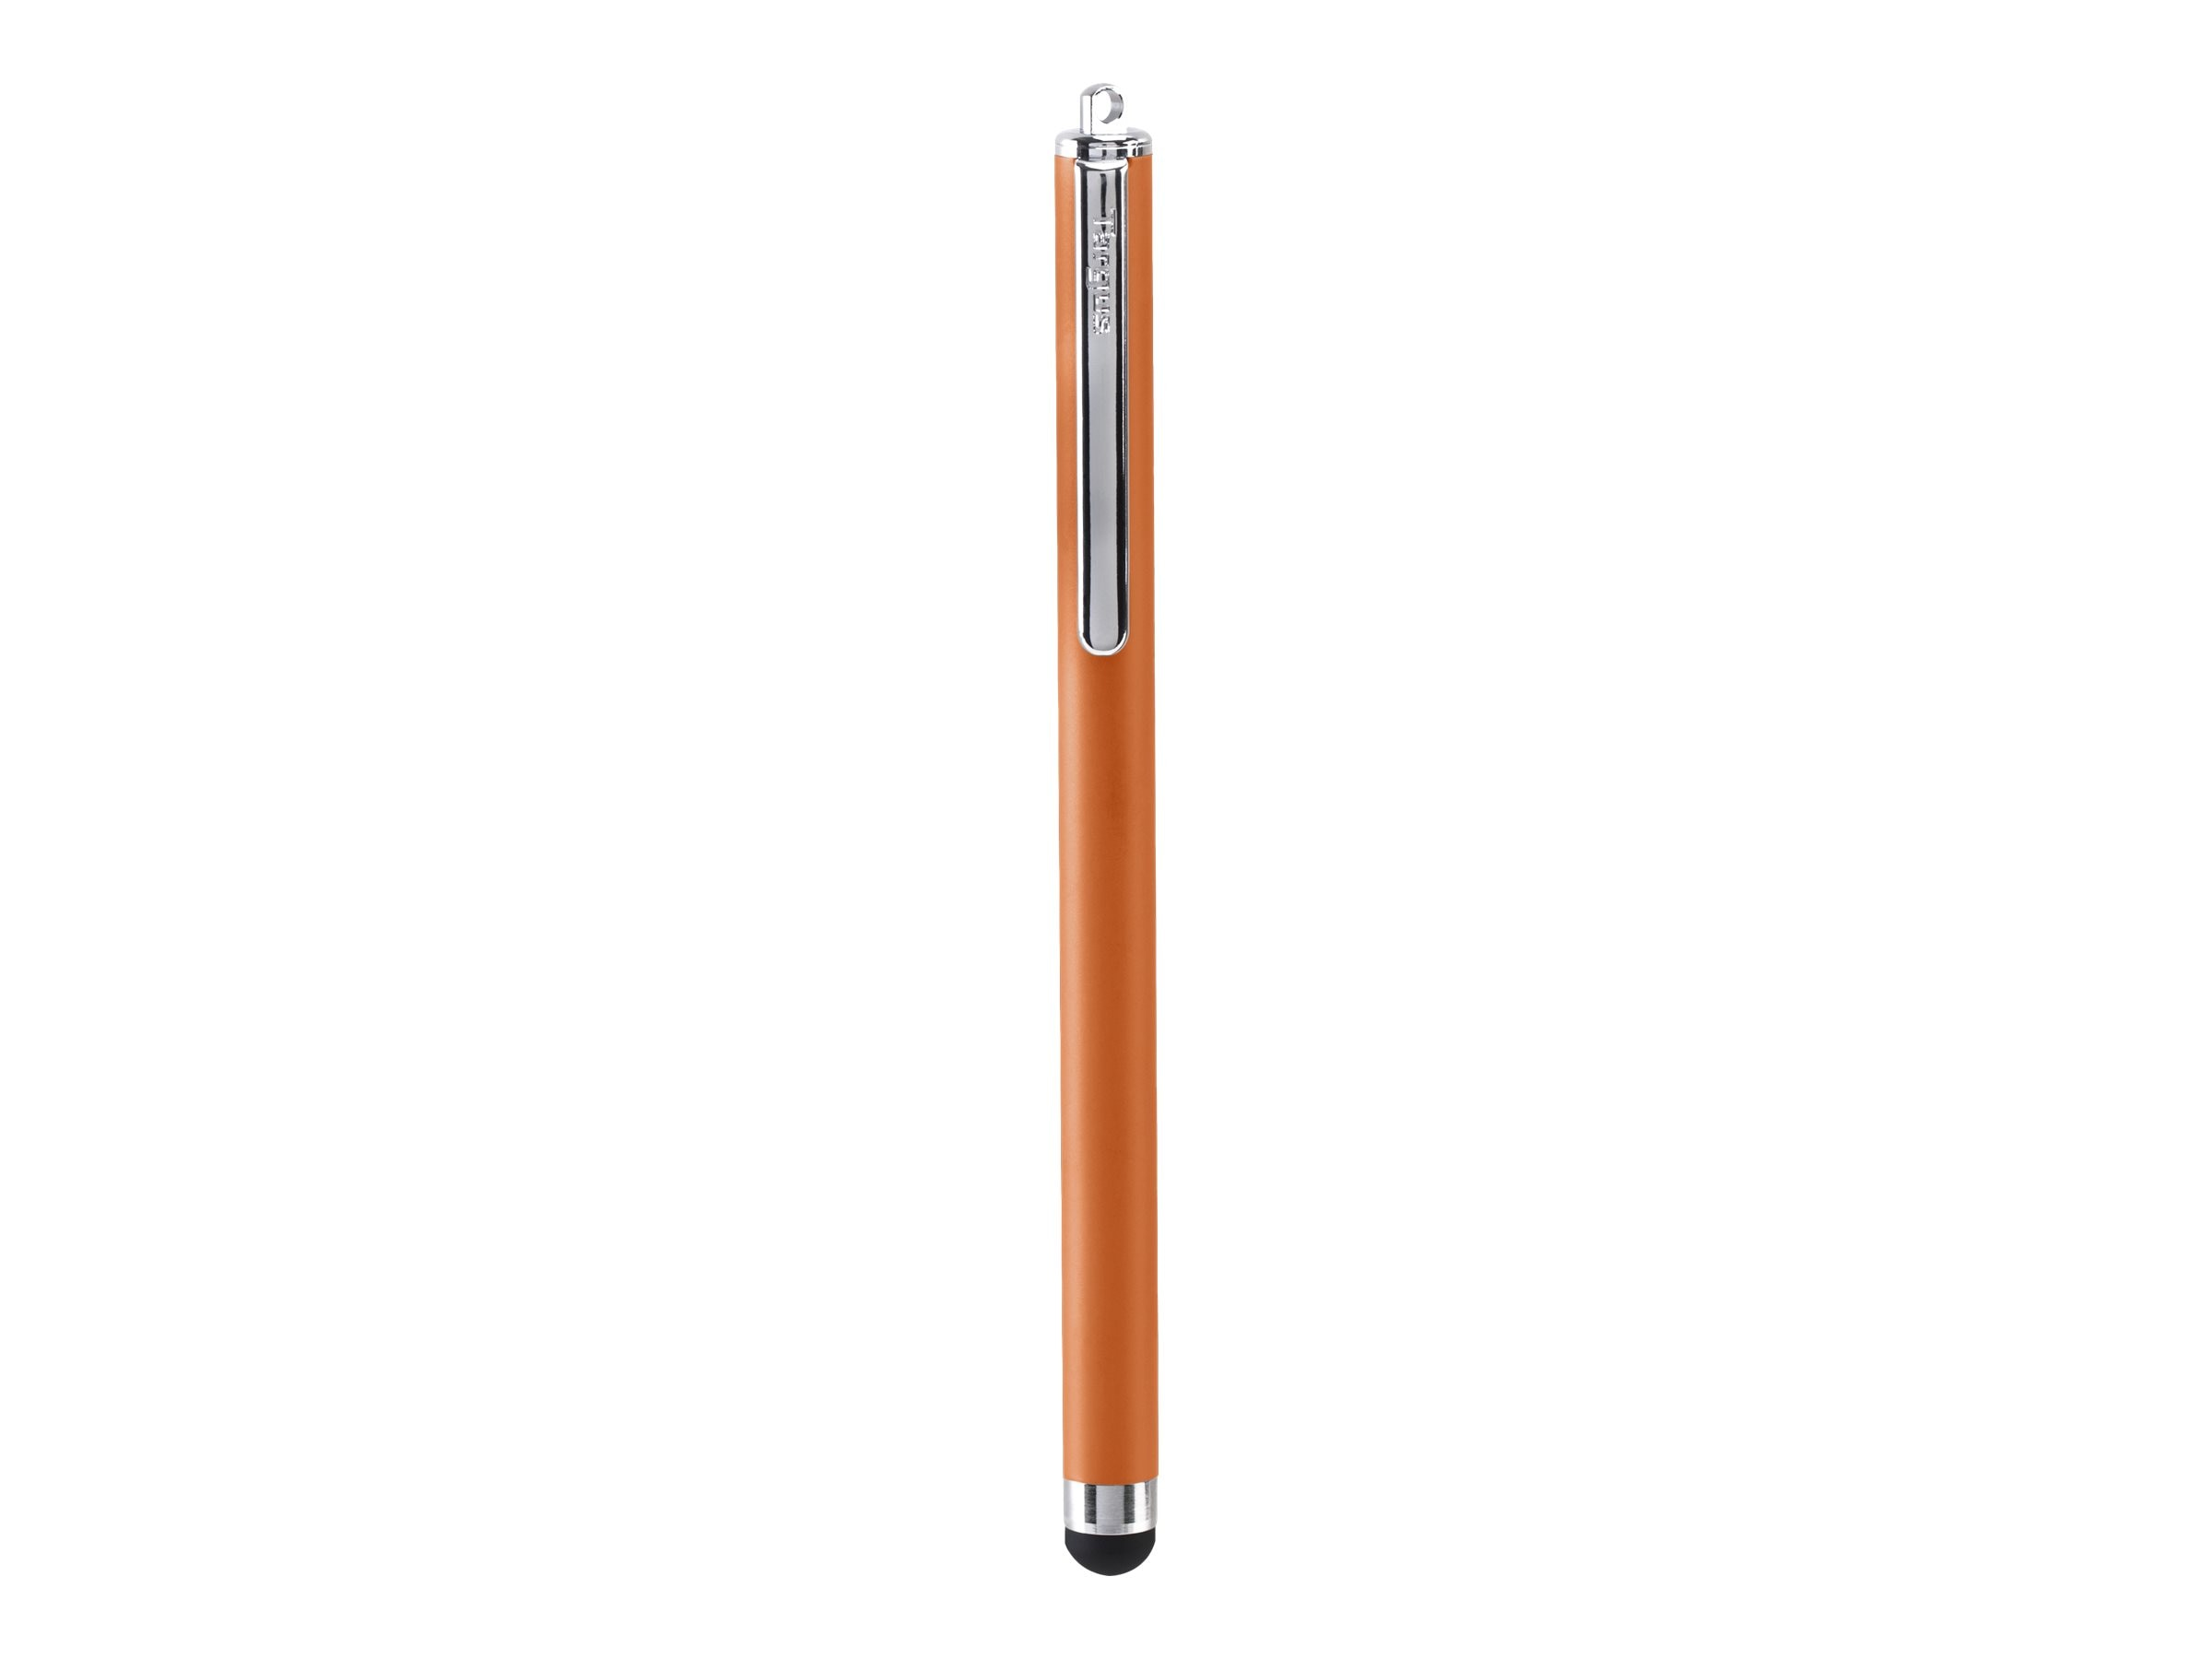 Targus Stylus for iPad 3, Orange Peel